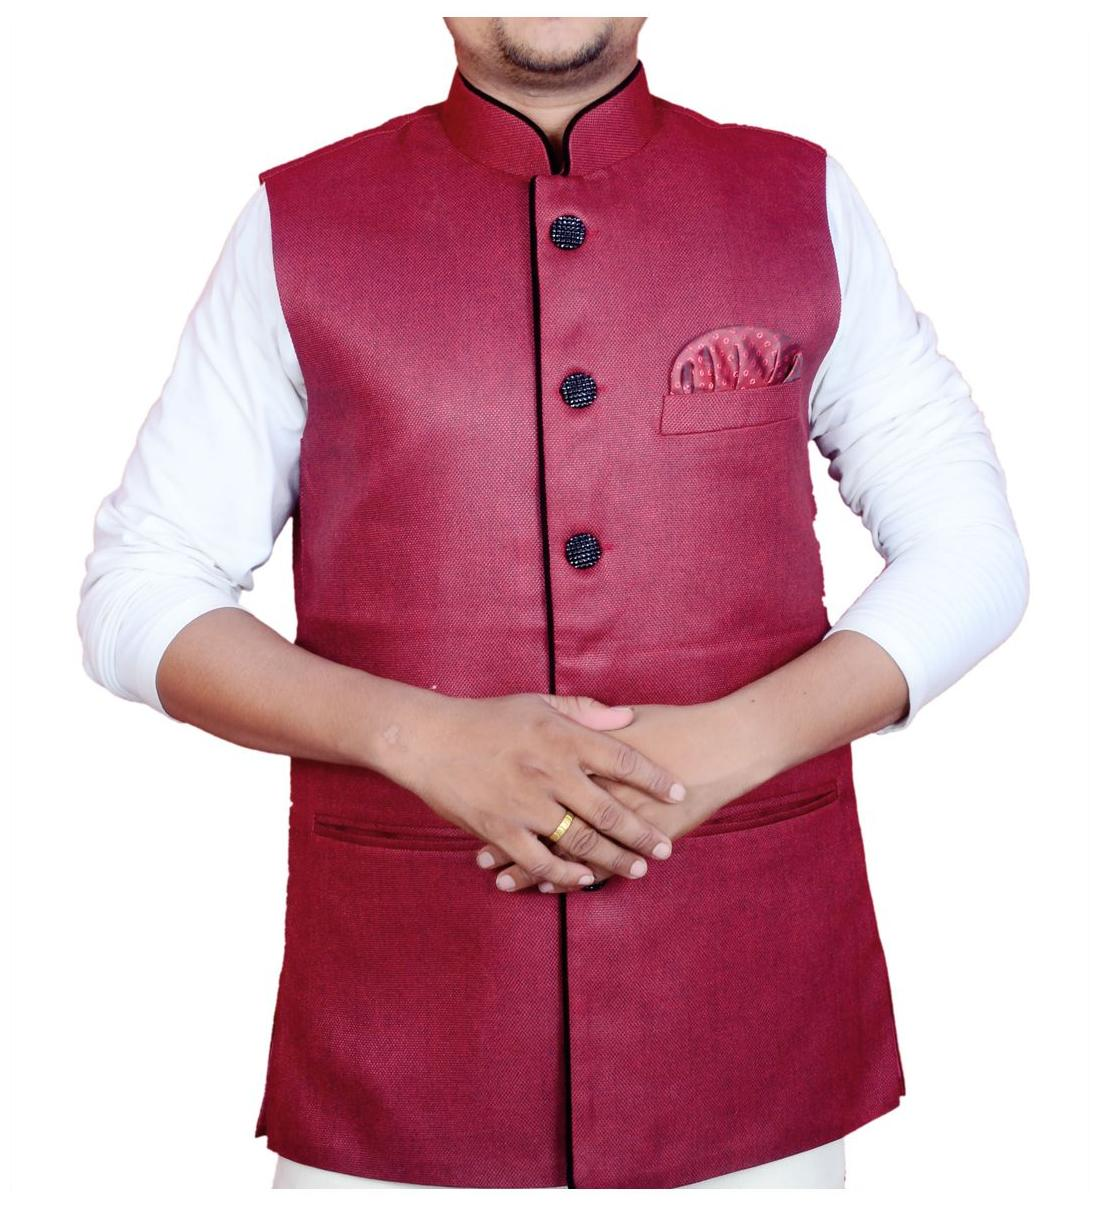 600f9a32330aa3 Buy Modi Jacket / Nehru Jacket Maroon Color Online at Low Prices in India -  Paytmmall.com